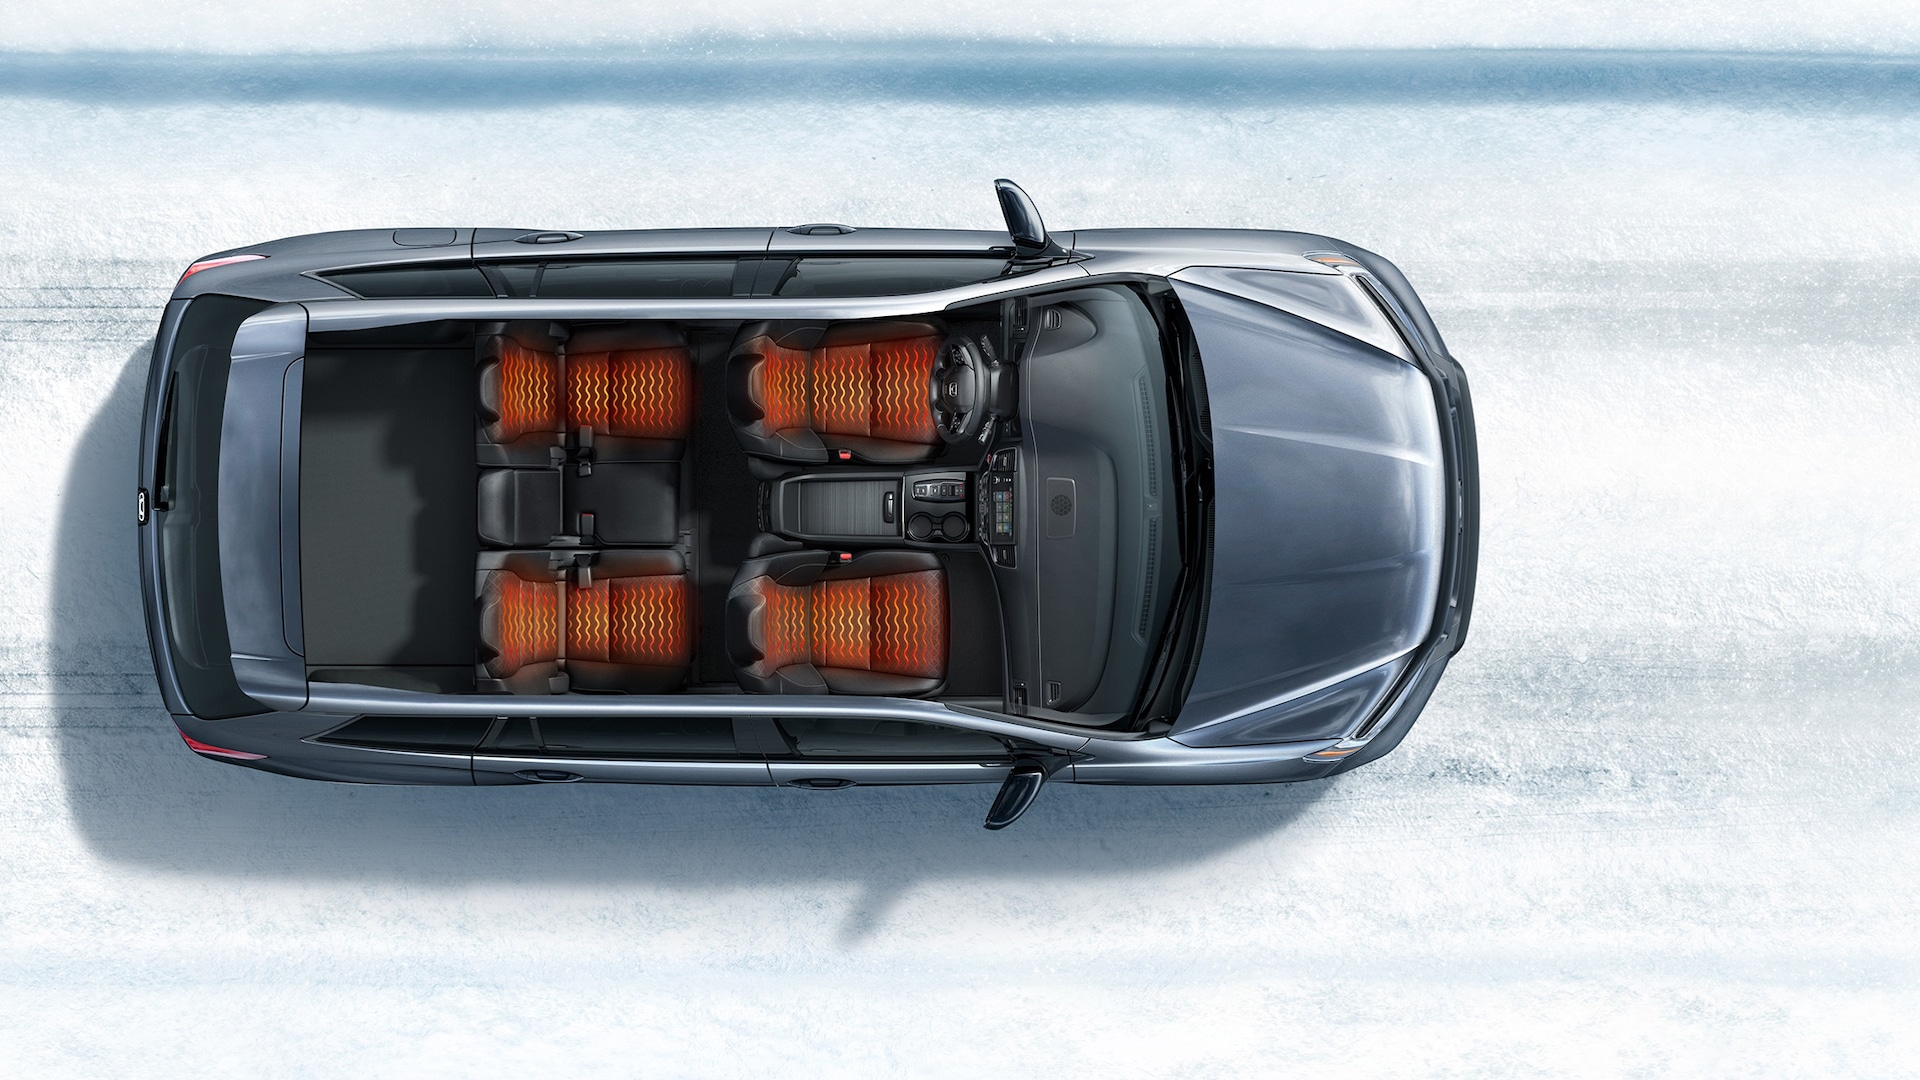 Overhead view of the 2021 Honda Passport Elite demonstrating heated seats in a snowy road environment.